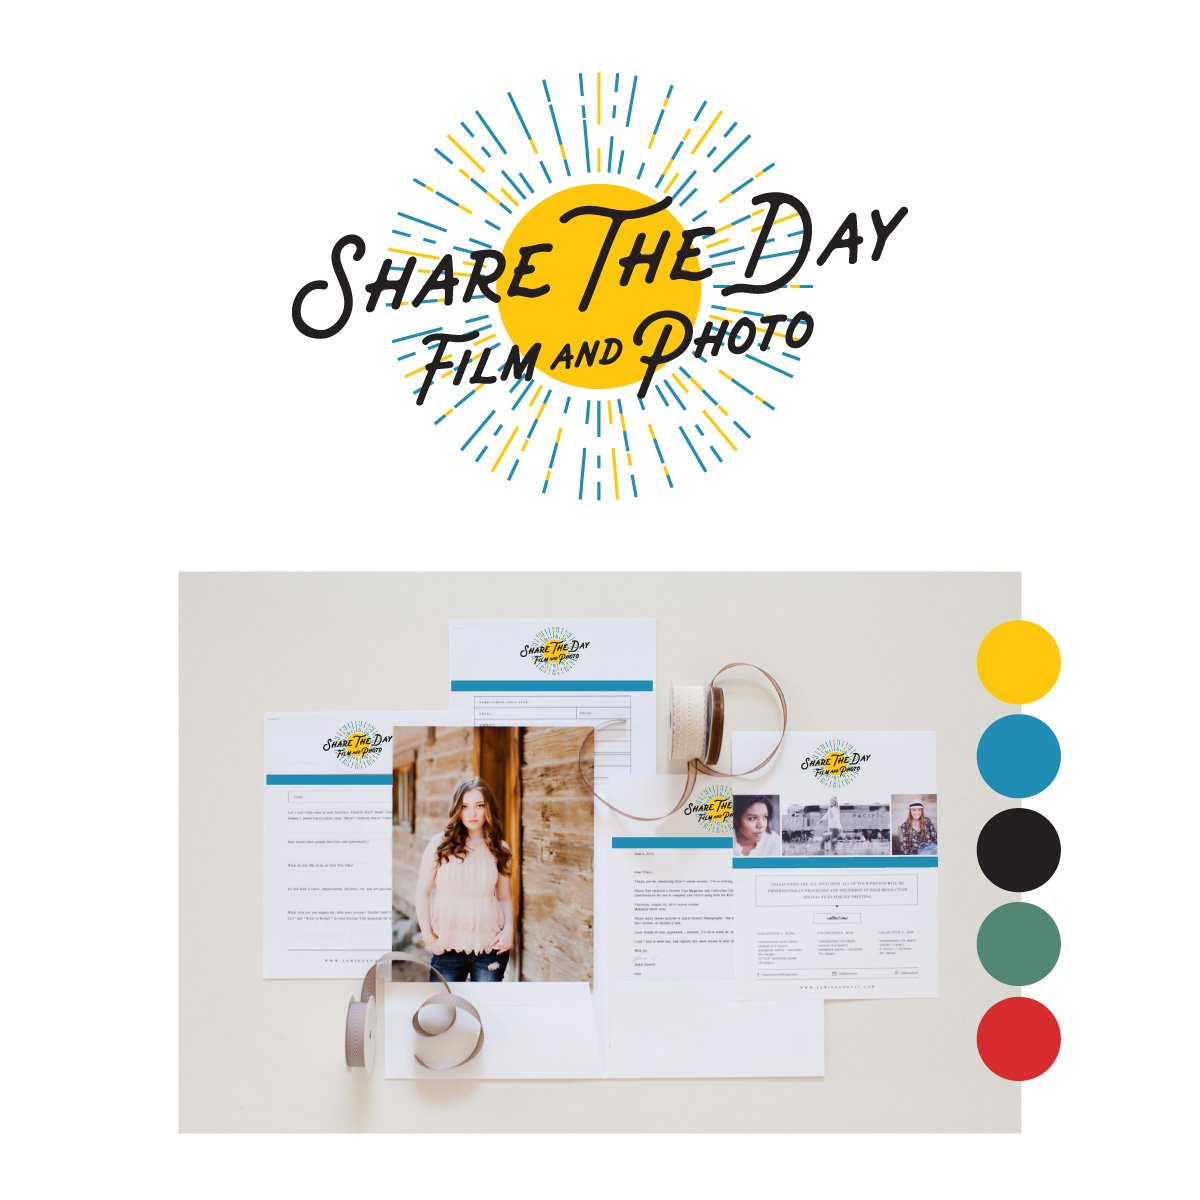 Share The Day Film & Photo - Logo design and visual branding